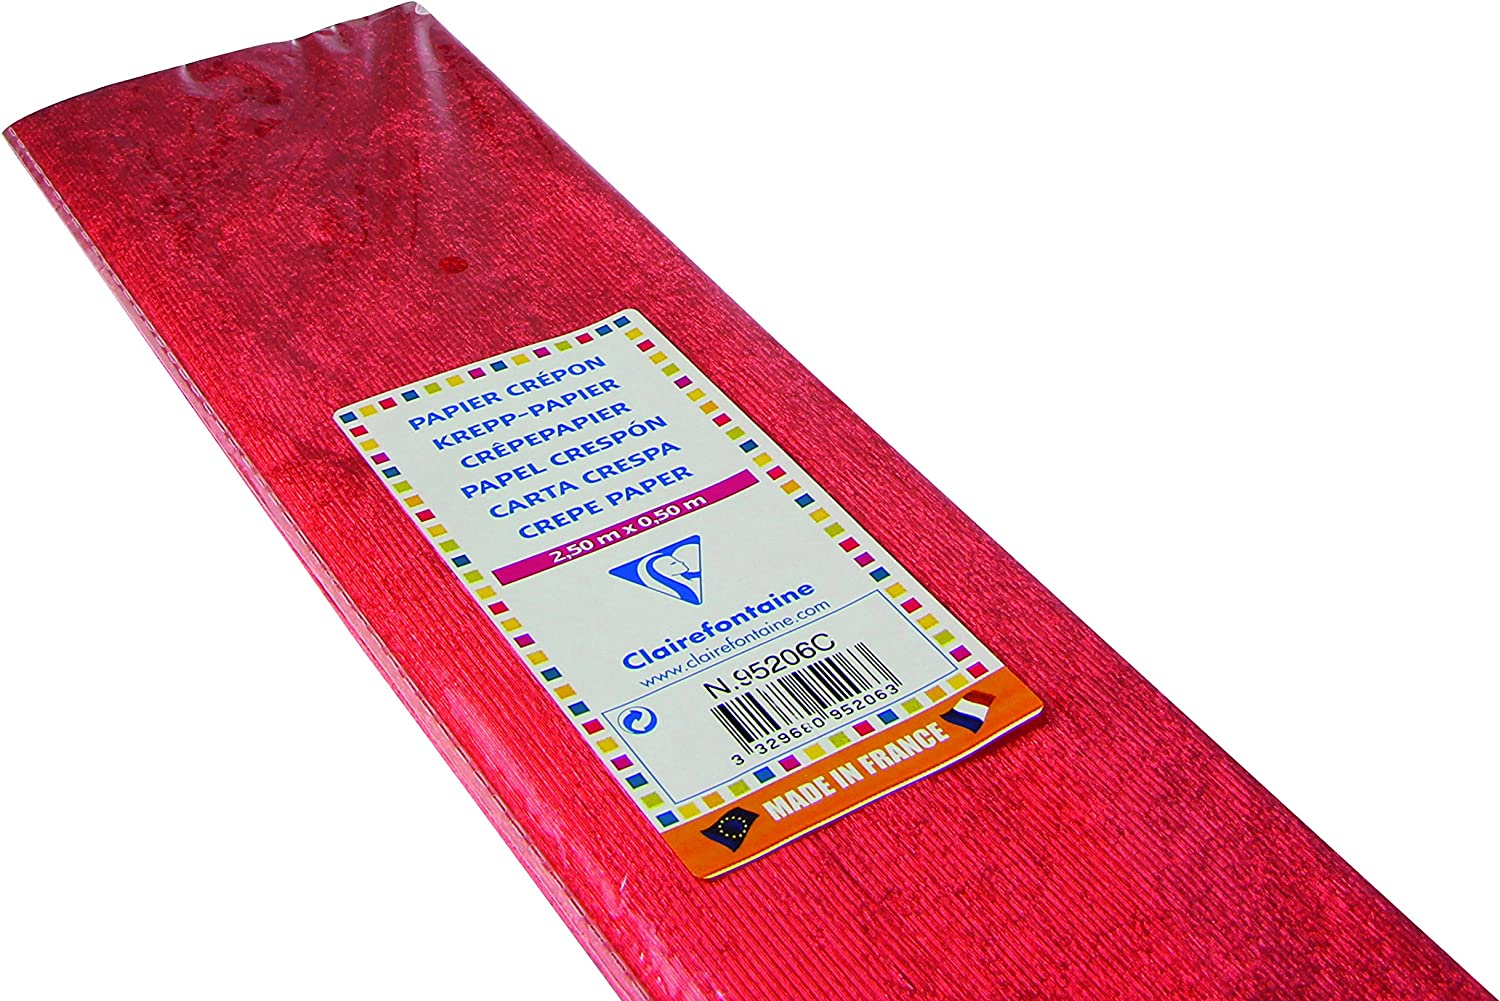 (Red)  Clairefontaine Metallic Crepe Paper Roll, 2.50x0.50m, 60%  Red